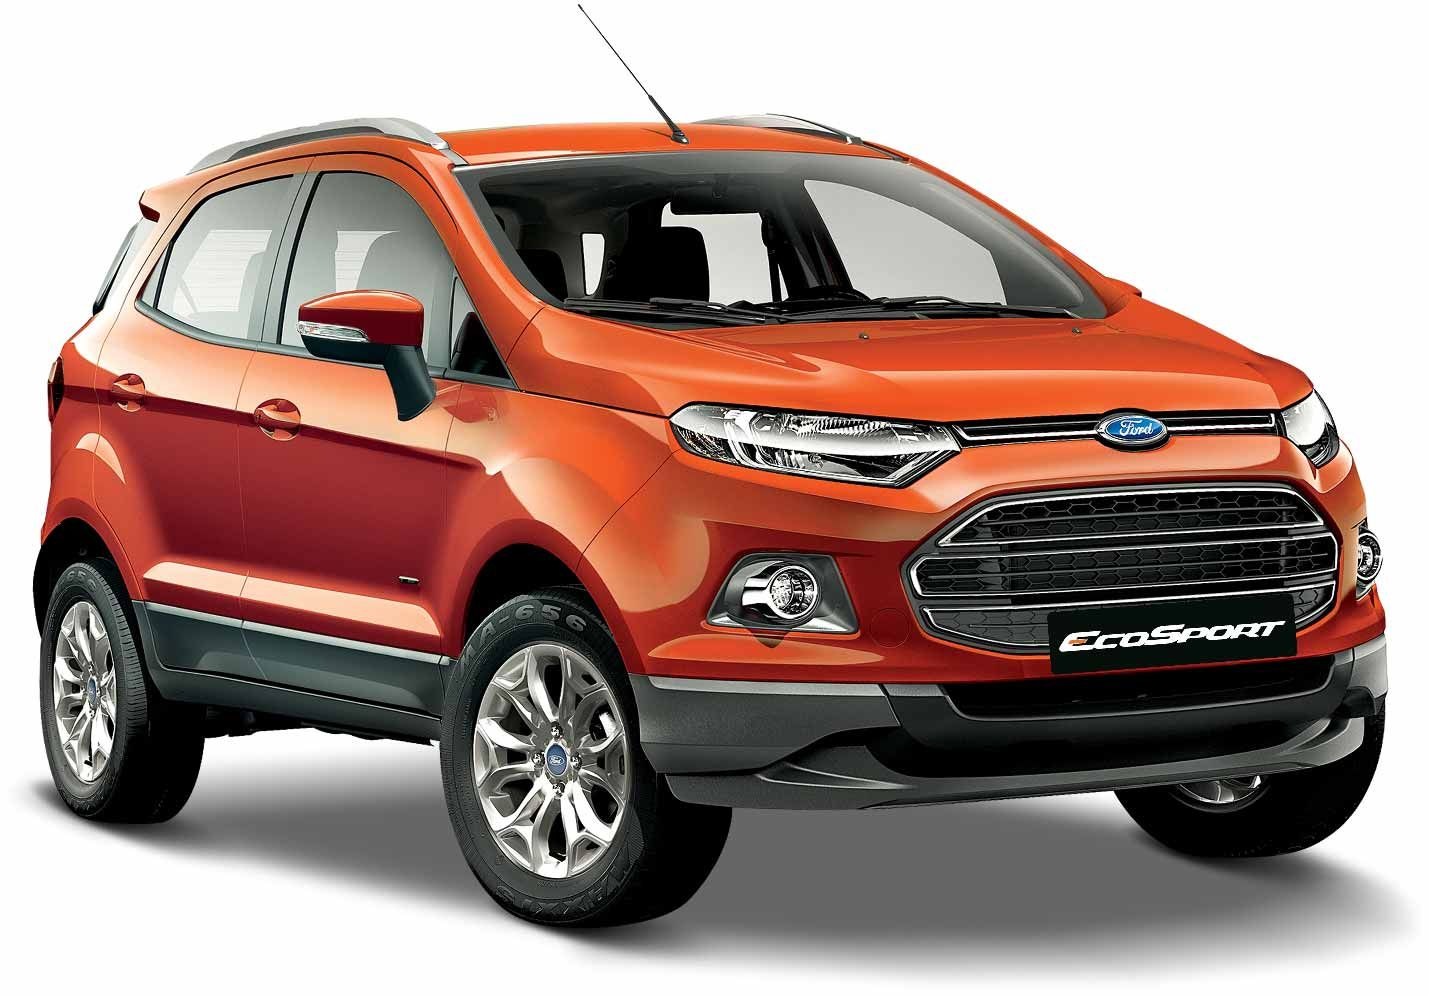 48,000 Ford EcoSport Diesel recalled in India Ford ecosport